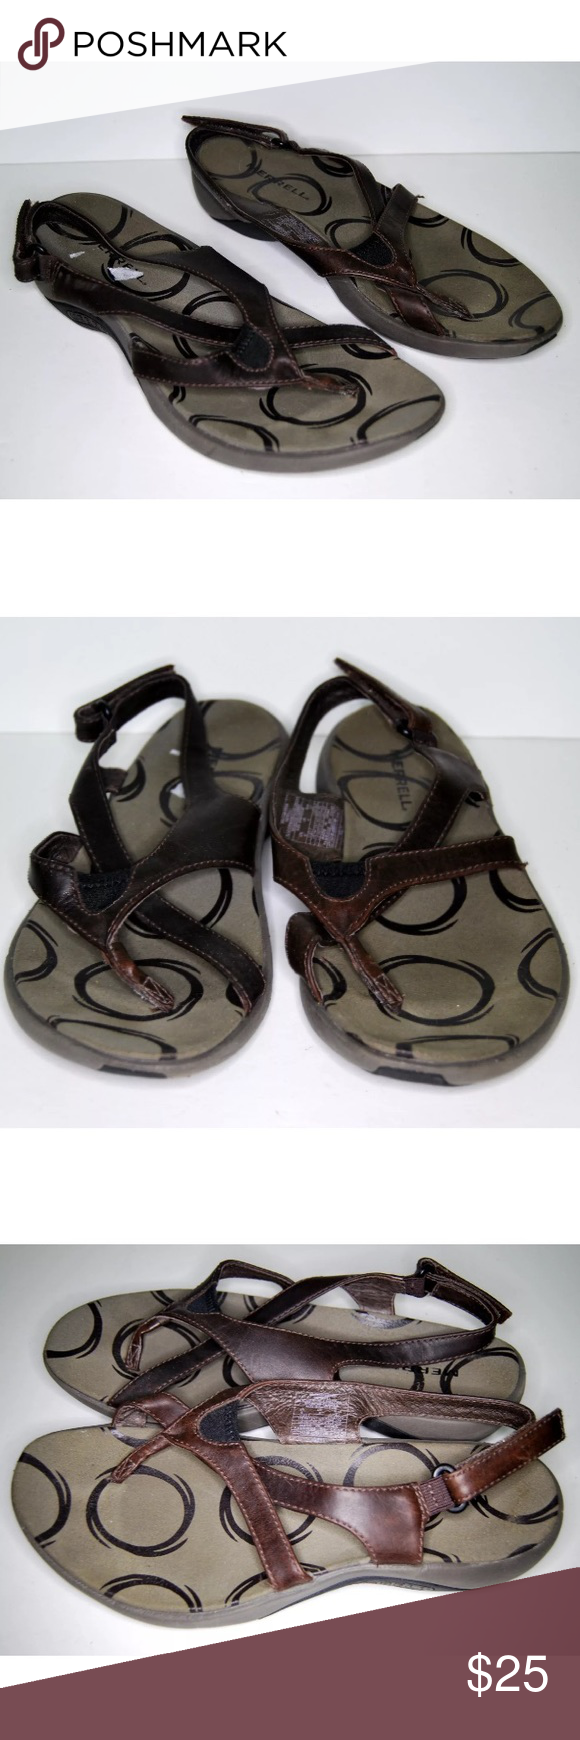 7b2822fbde54 Merrell Savannah Brown Leather Sandals Merrell Savannah Sandals Size 6  Color-Brown Shoes are Gently used. See pics. General Wear. Has some sticker  remnants ...